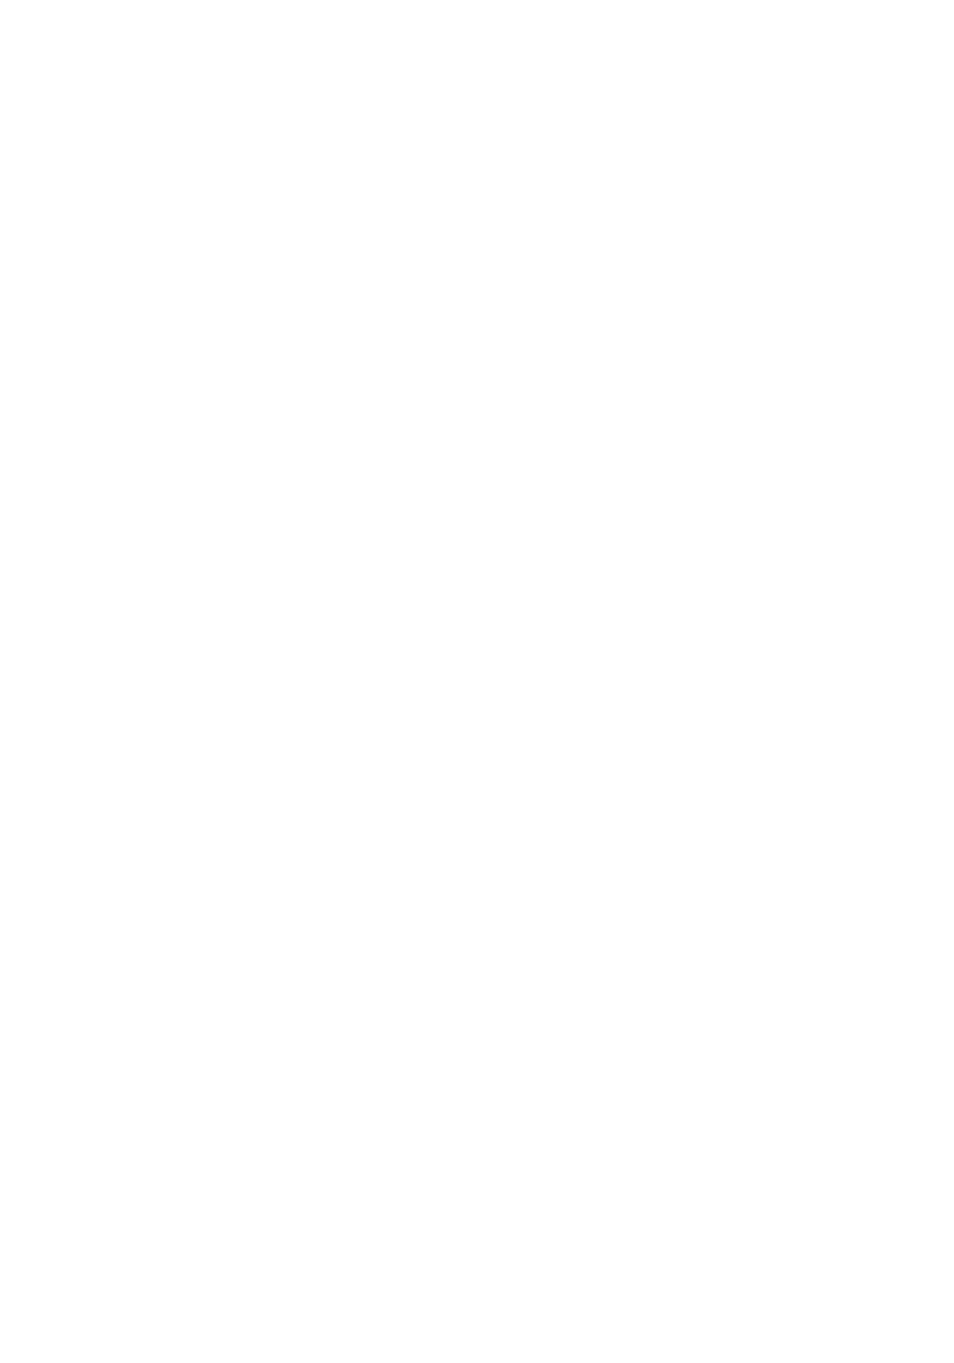 motorola minitor v user manual page 15 17 rh manualsdir com motorola minitor v user guide pdf Minitor V Accessories